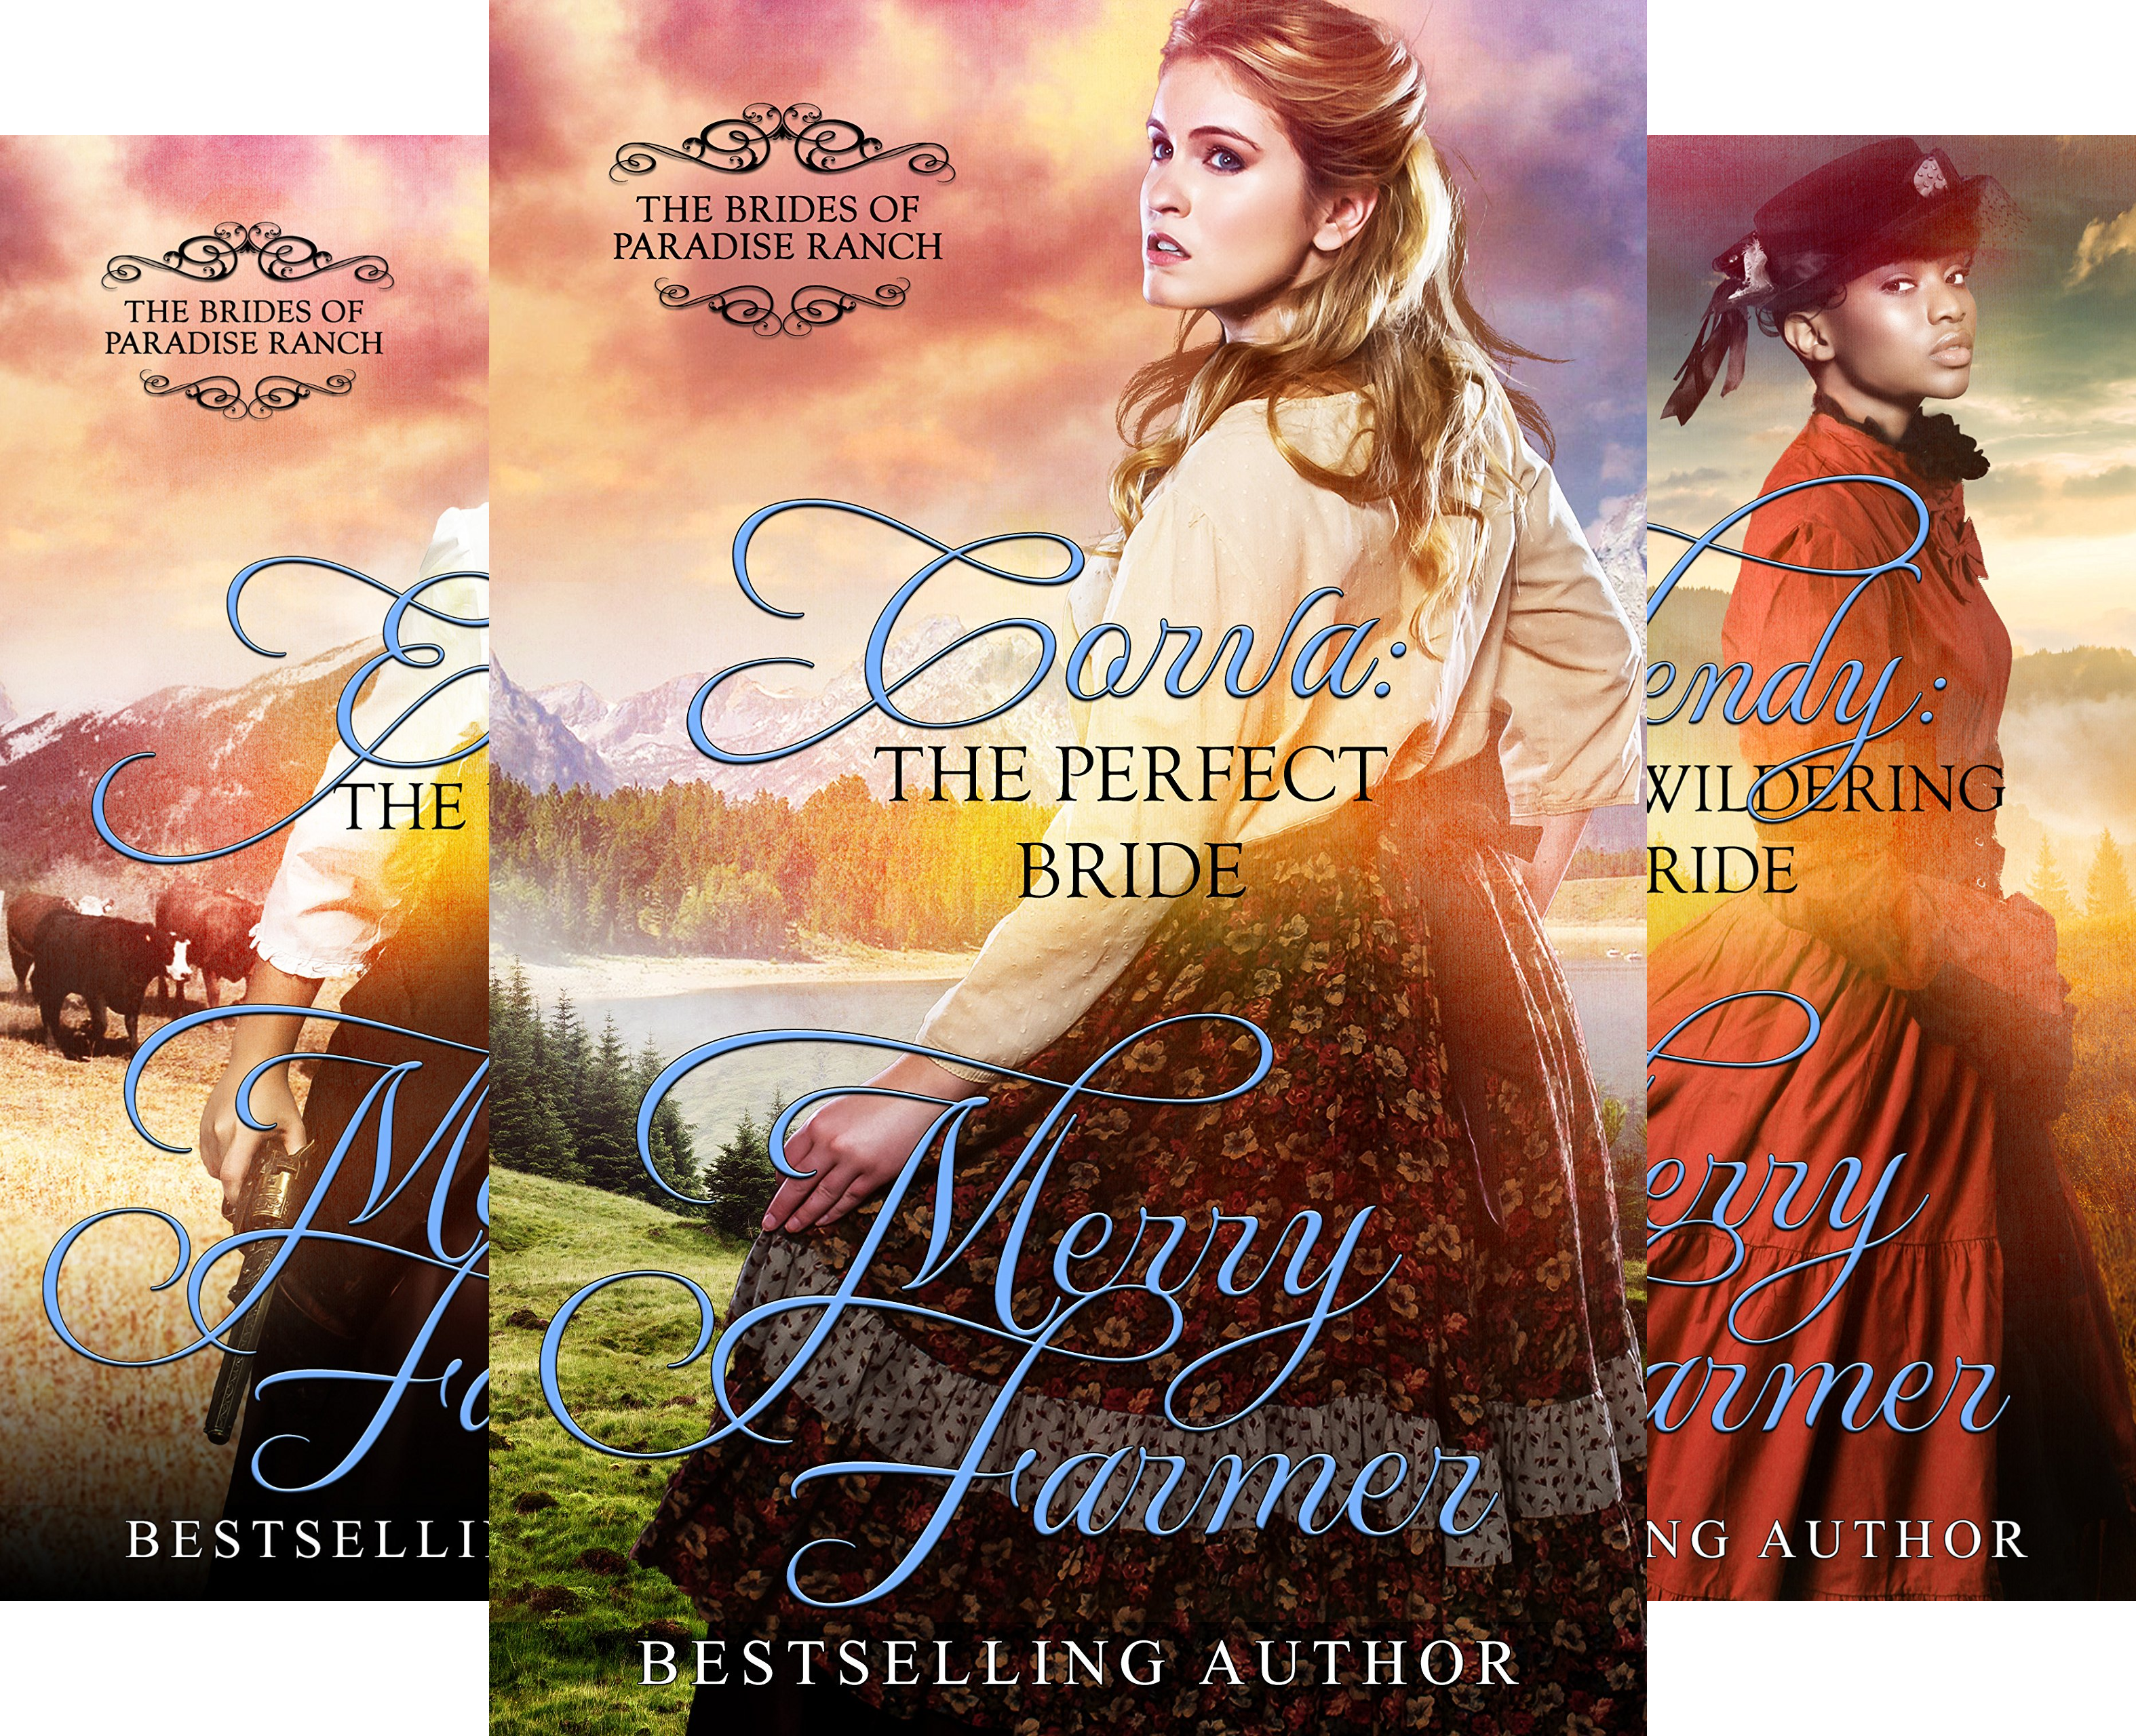 The Brides of Paradise Ranch (9 Book Series)